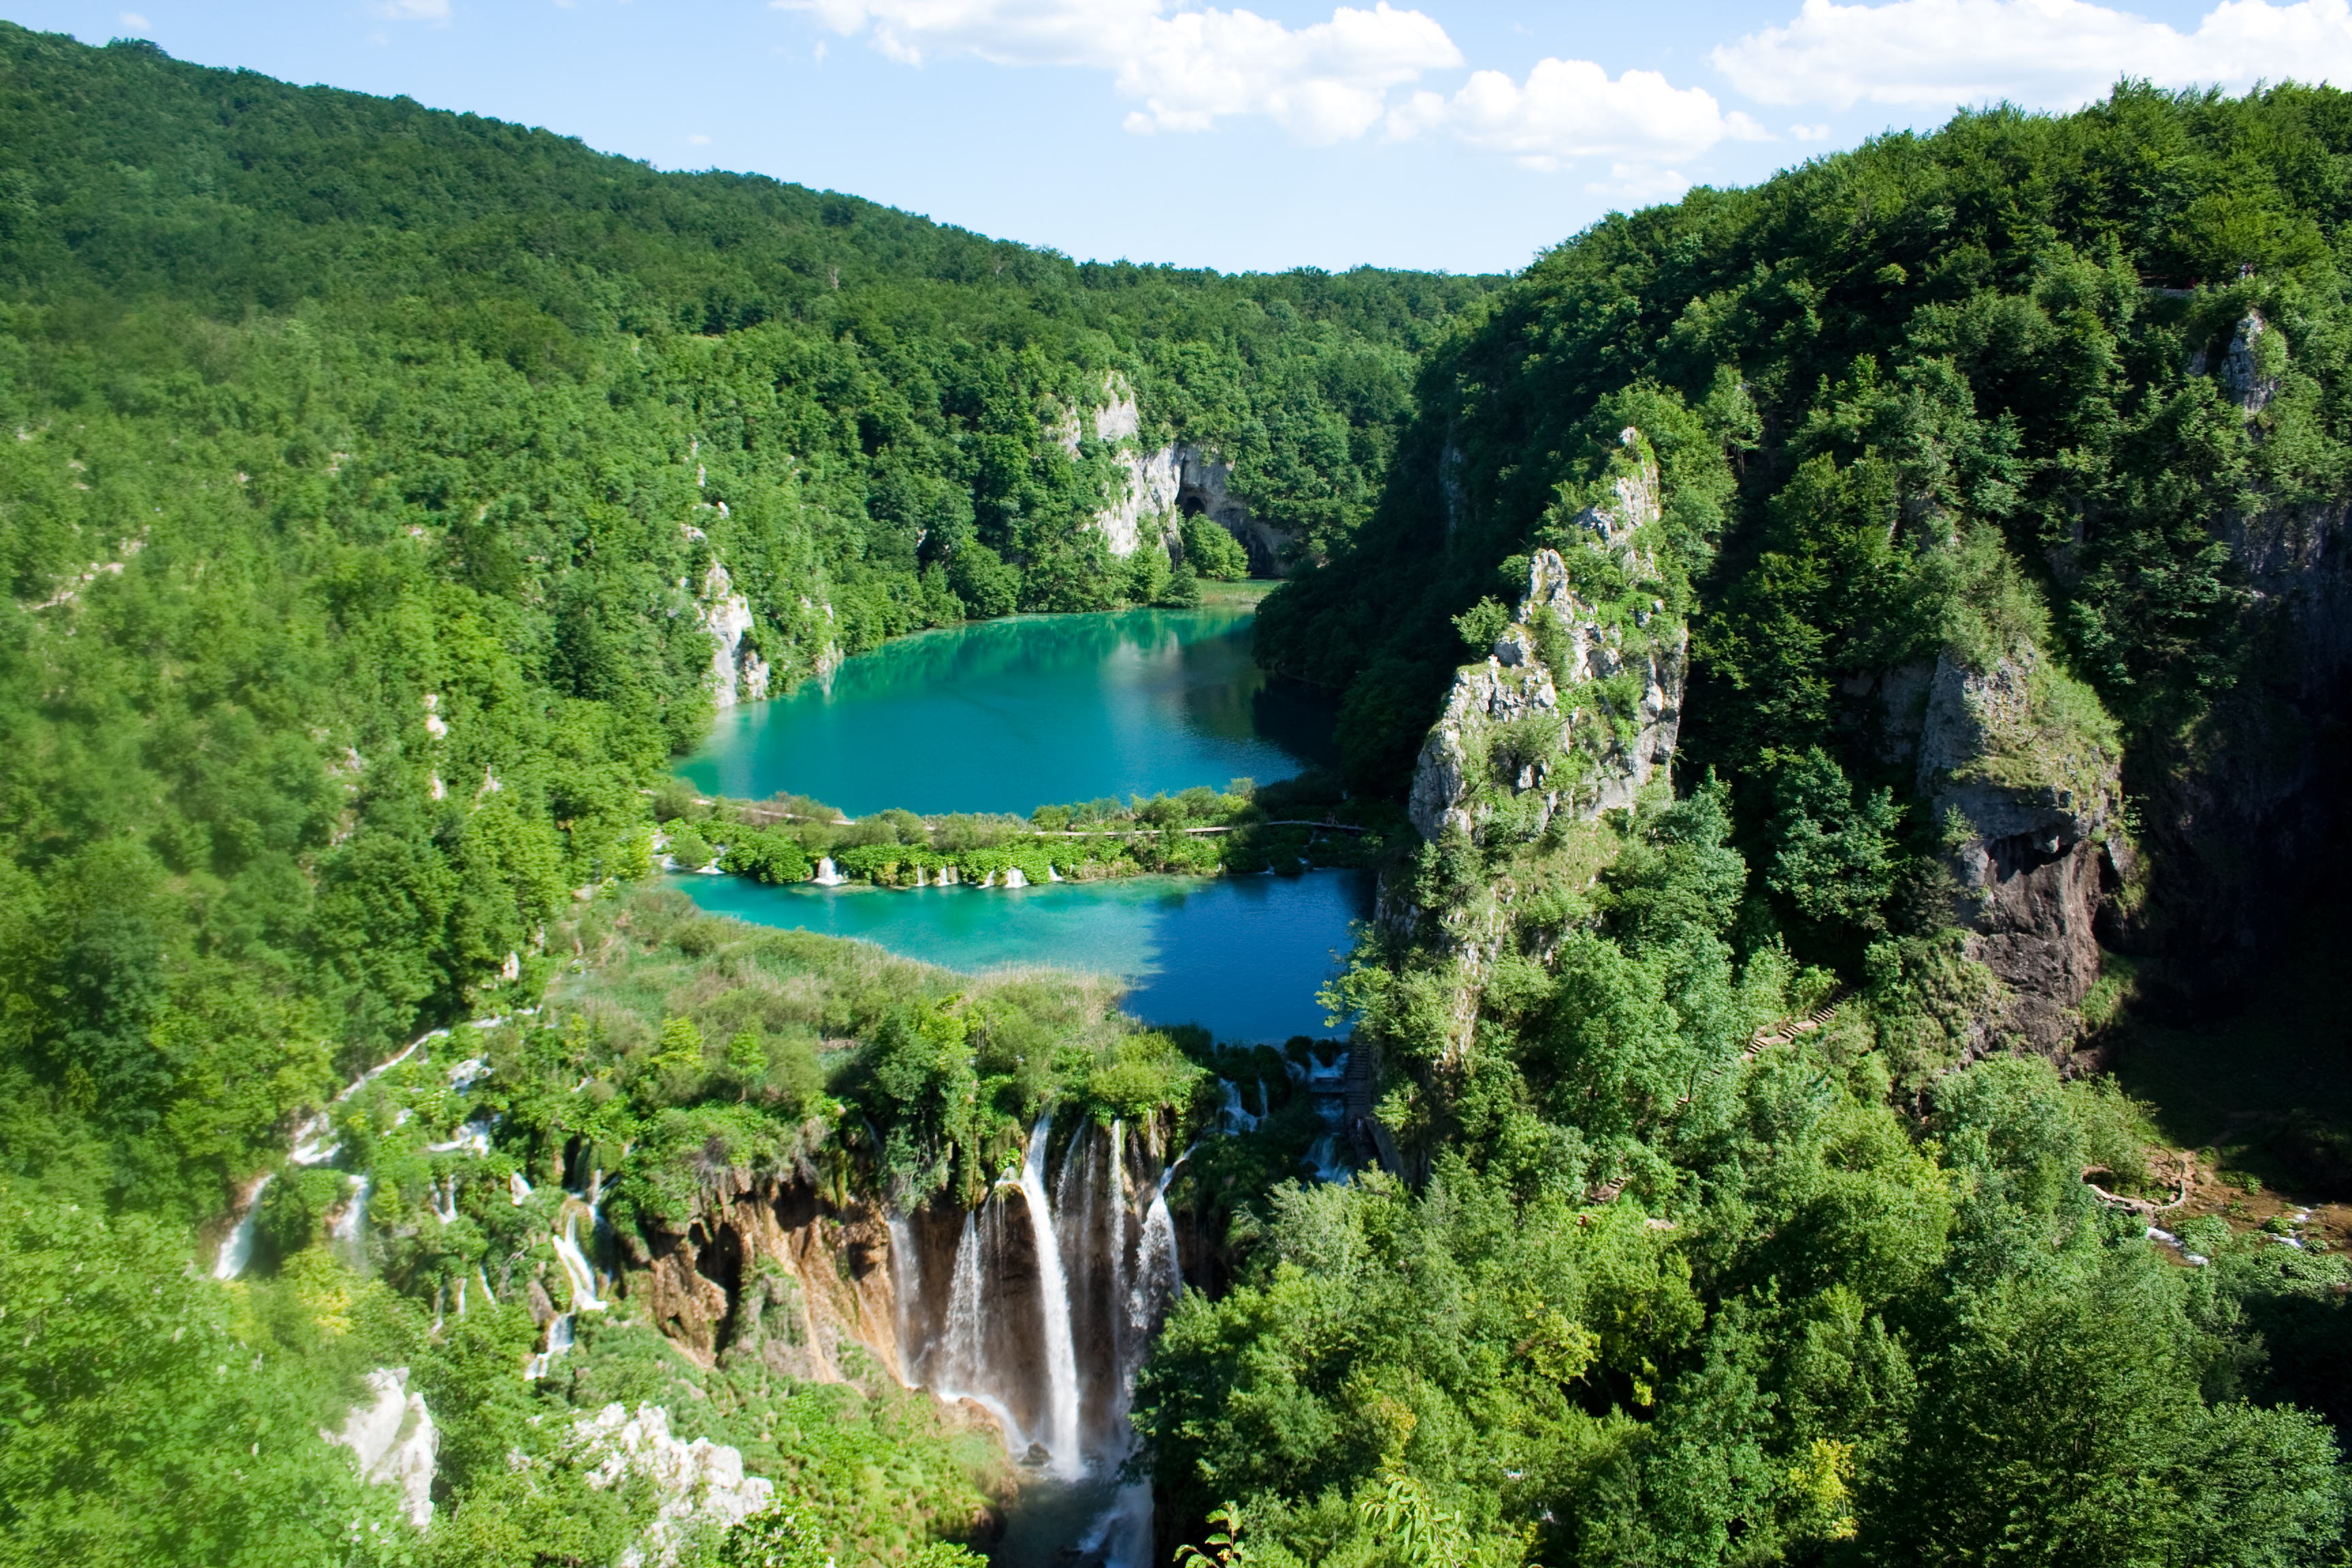 Plitvice_Lakes_National_Park_%282%29.jpg